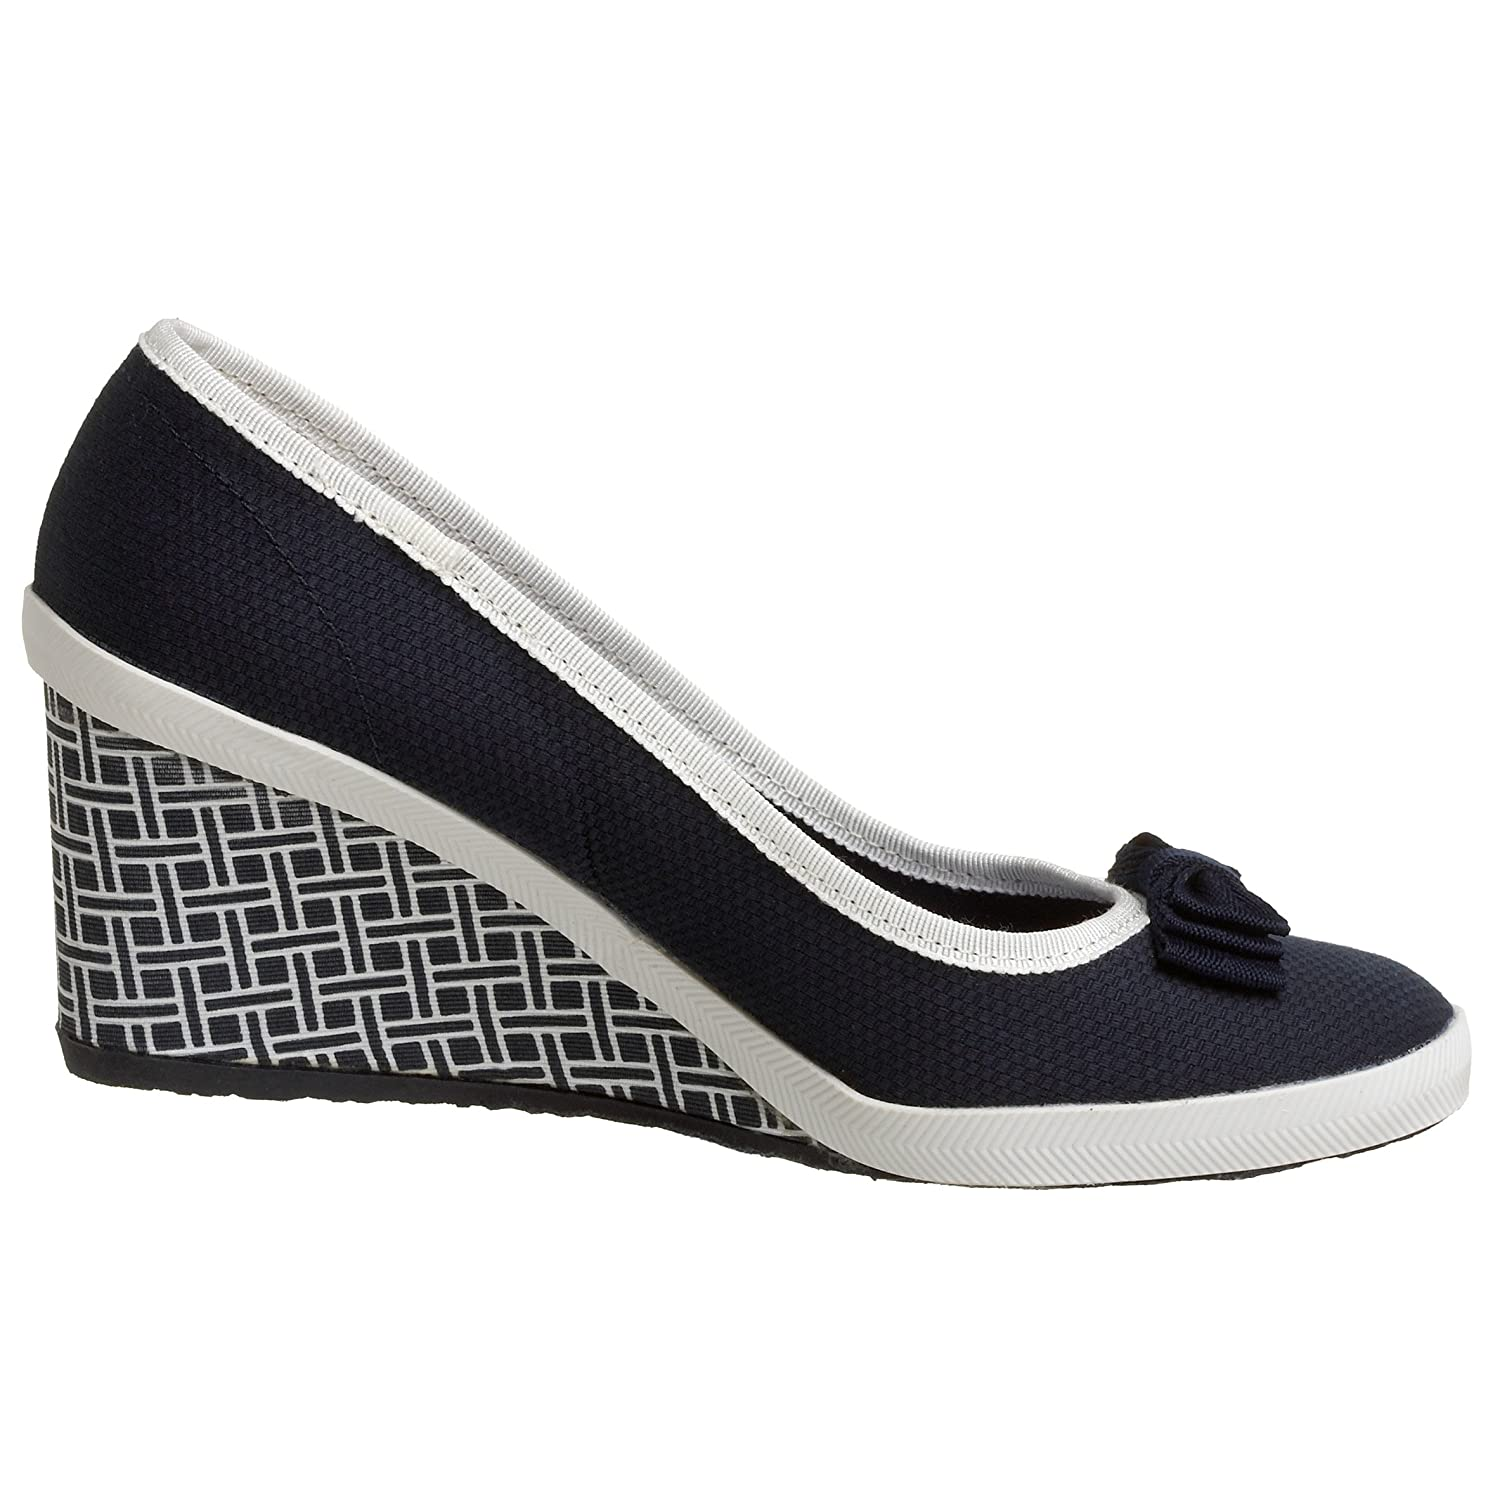 Keds Bliss Skimmer Wedge - Free Overnight Shipping & Return Shipping: Endless.com from endless.com